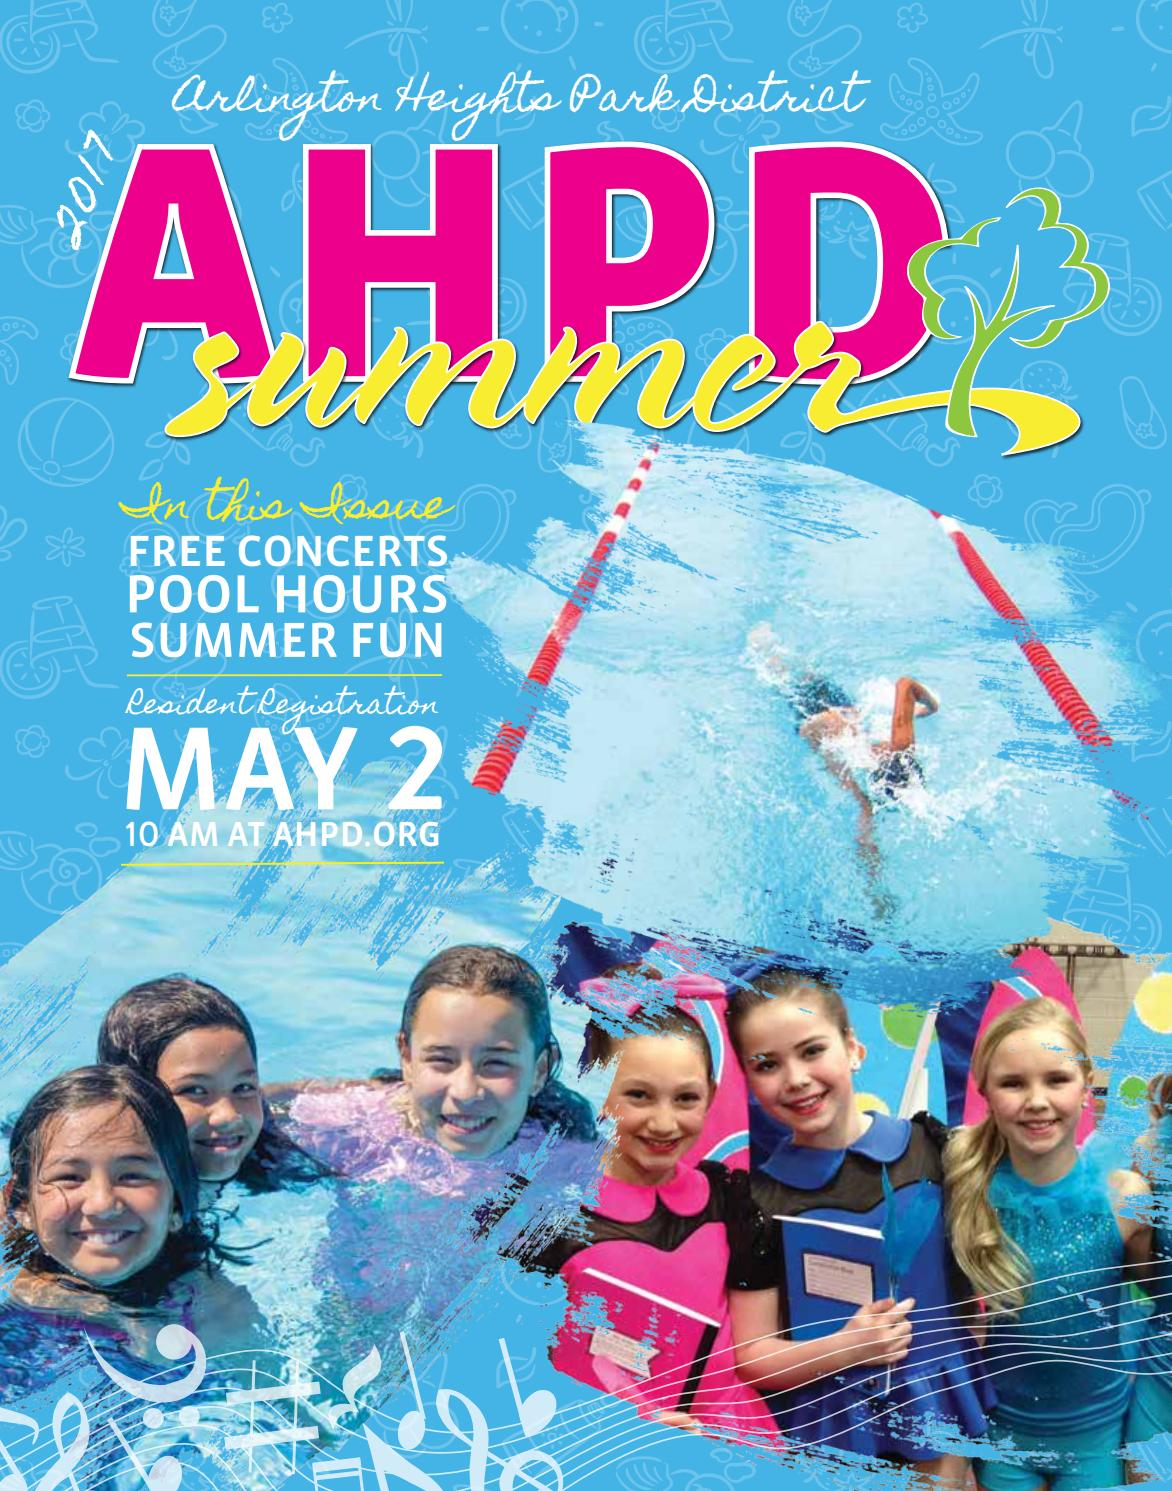 fed2186ca050 AHPD Summer 2017 Program Guide by Arlington Heights Park District - issuu